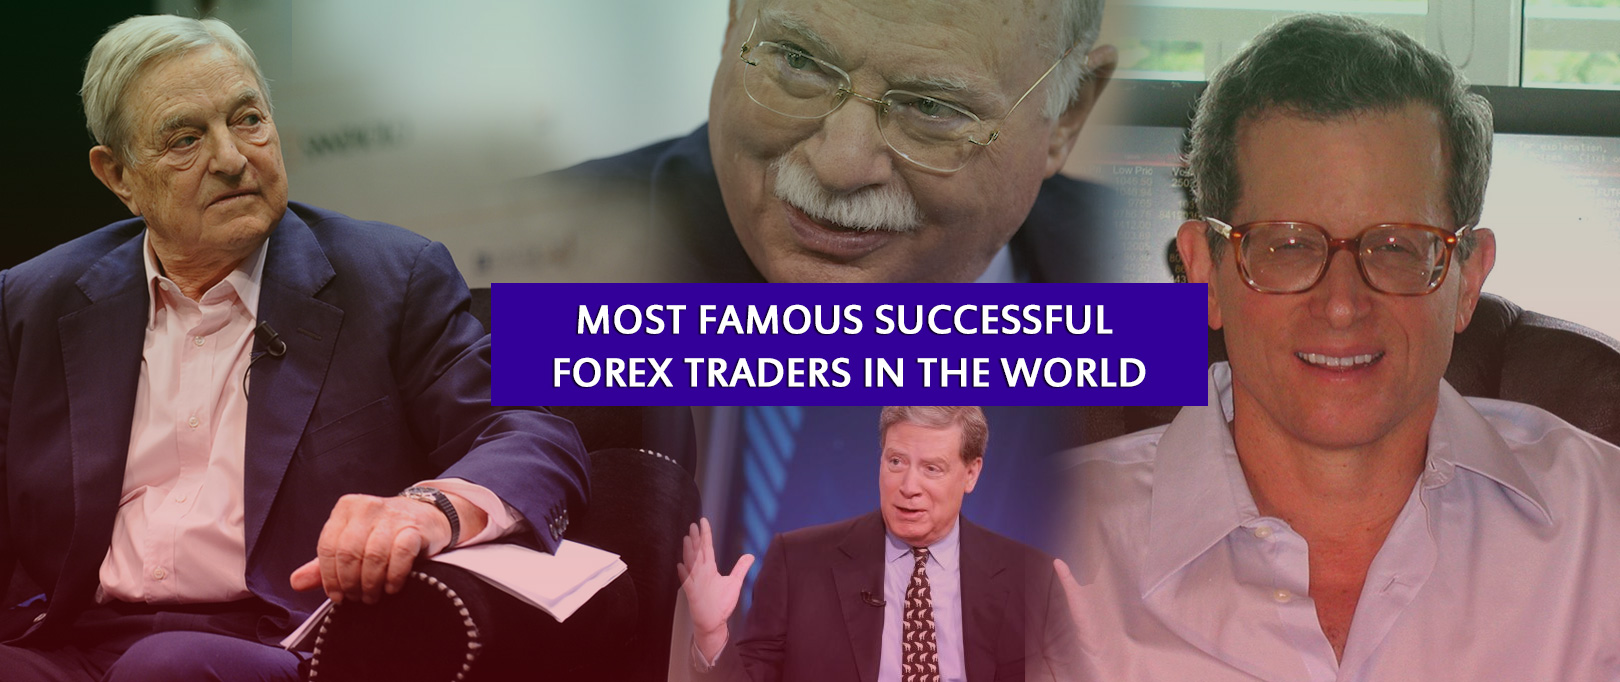 Most-Famous-Successful-Forex-Traders-in-the-world-by-prathilaba-sri-lanka